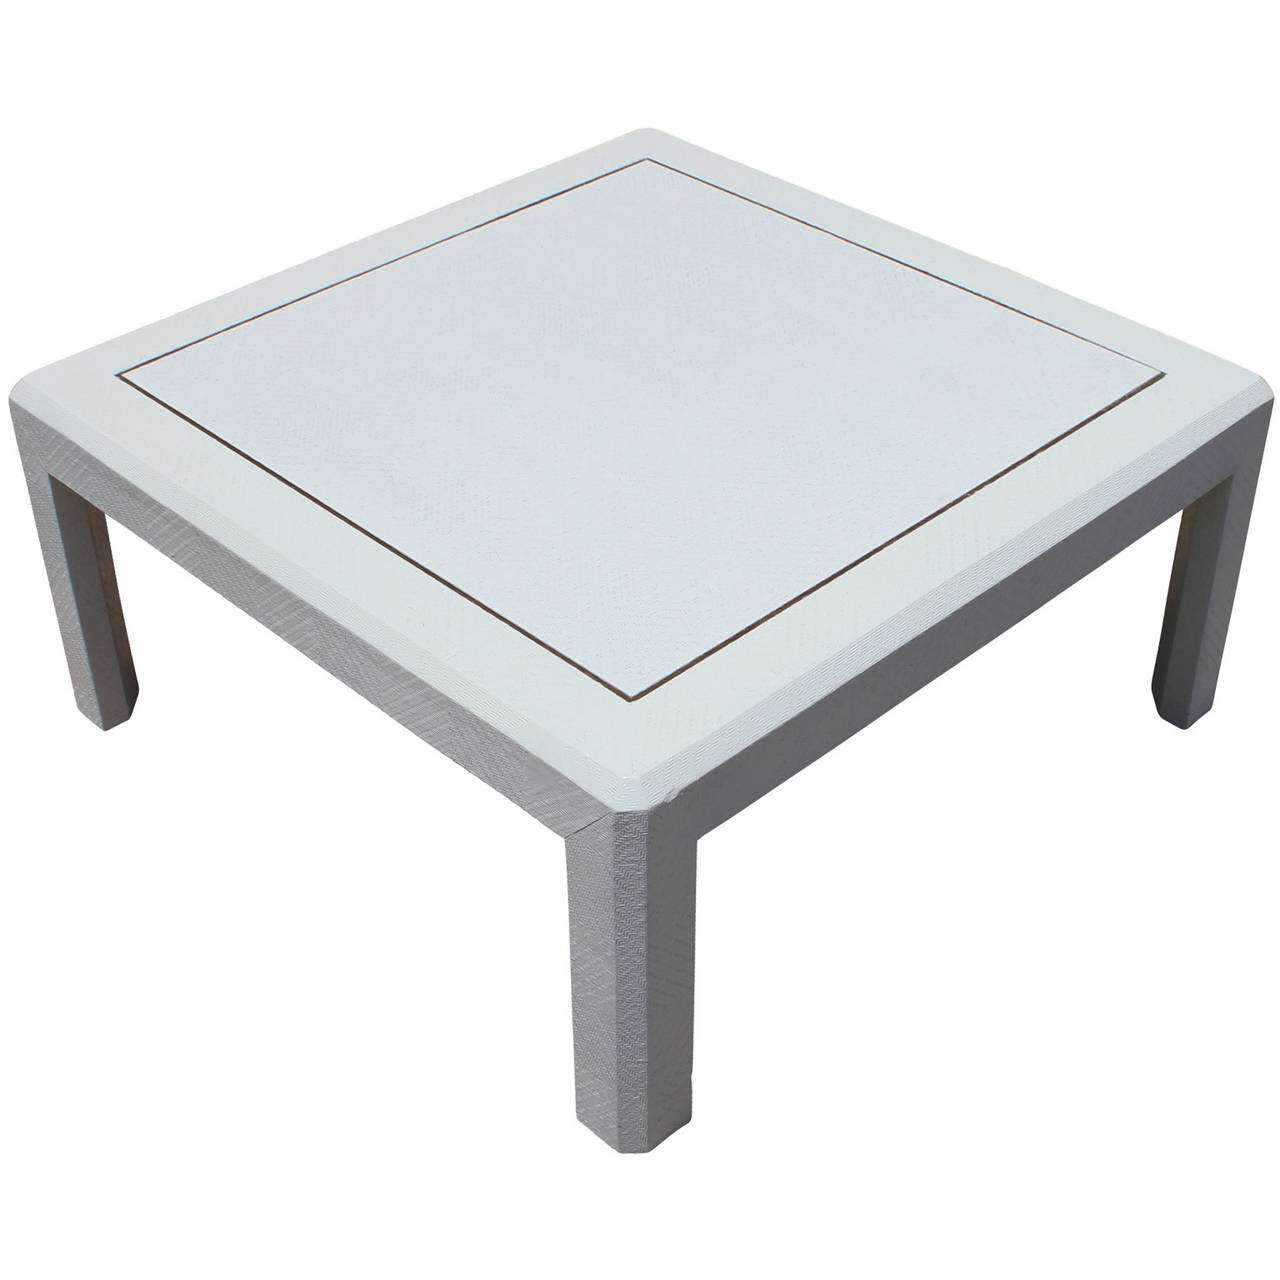 Modern Harrison Van Horn Style Square White Lacquered Raffia Regarding Most Current Square White Coffee Tables (View 12 of 20)